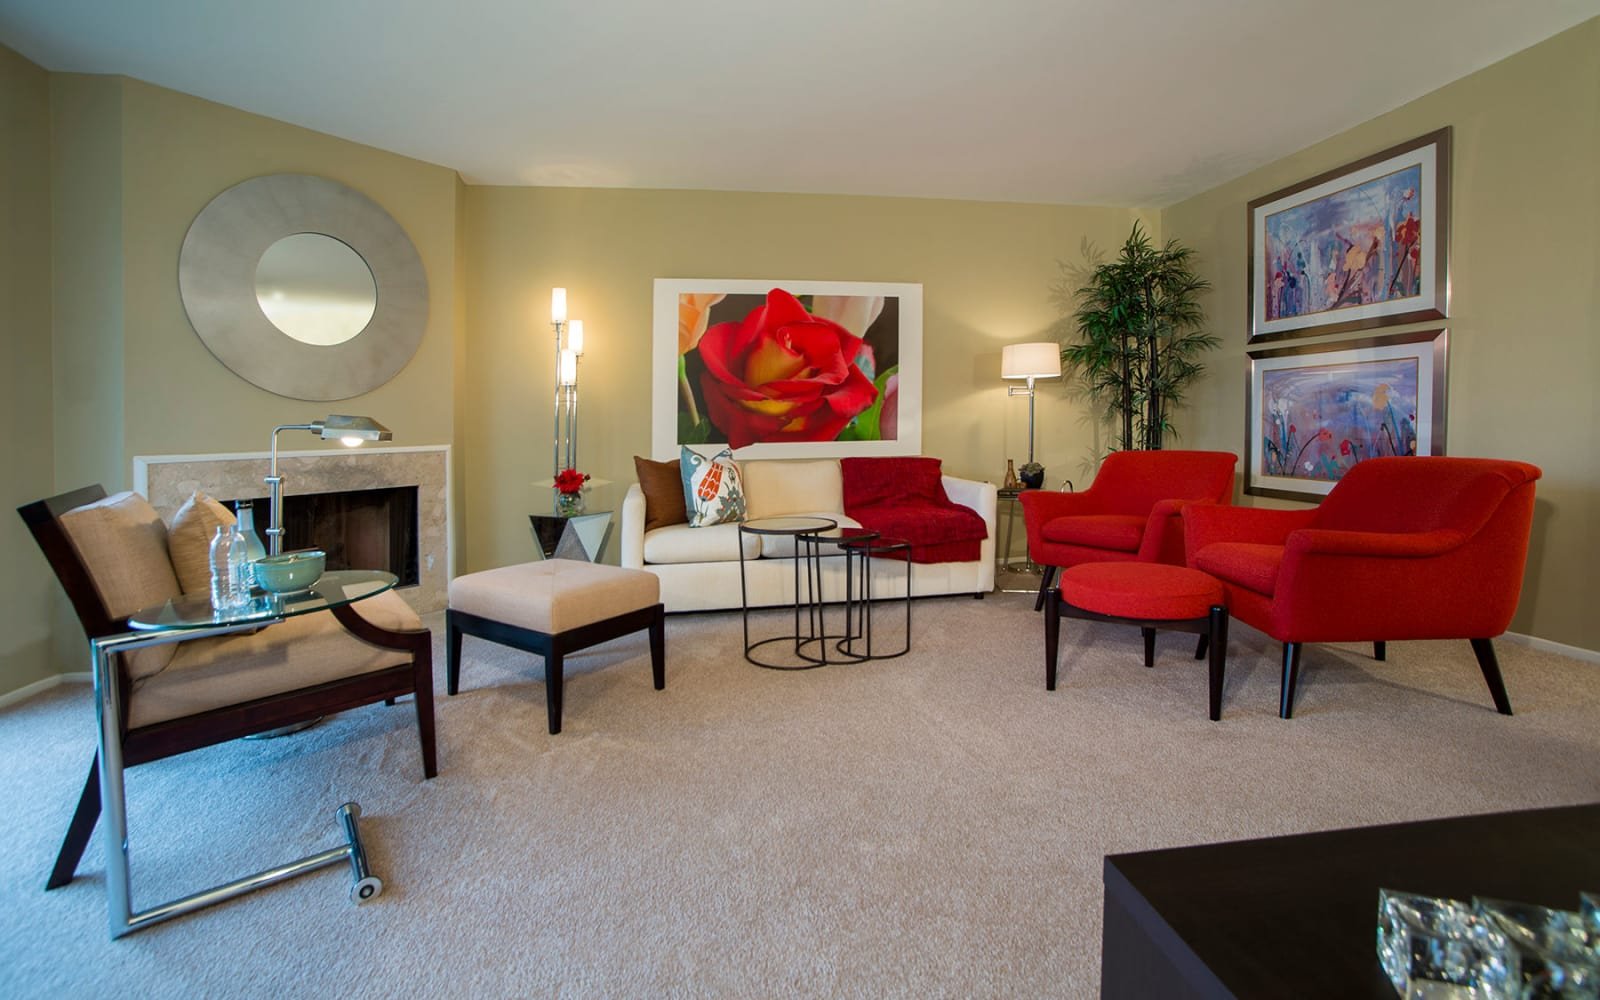 Model living room at Aldingbrooke in West Bloomfield, Michigan